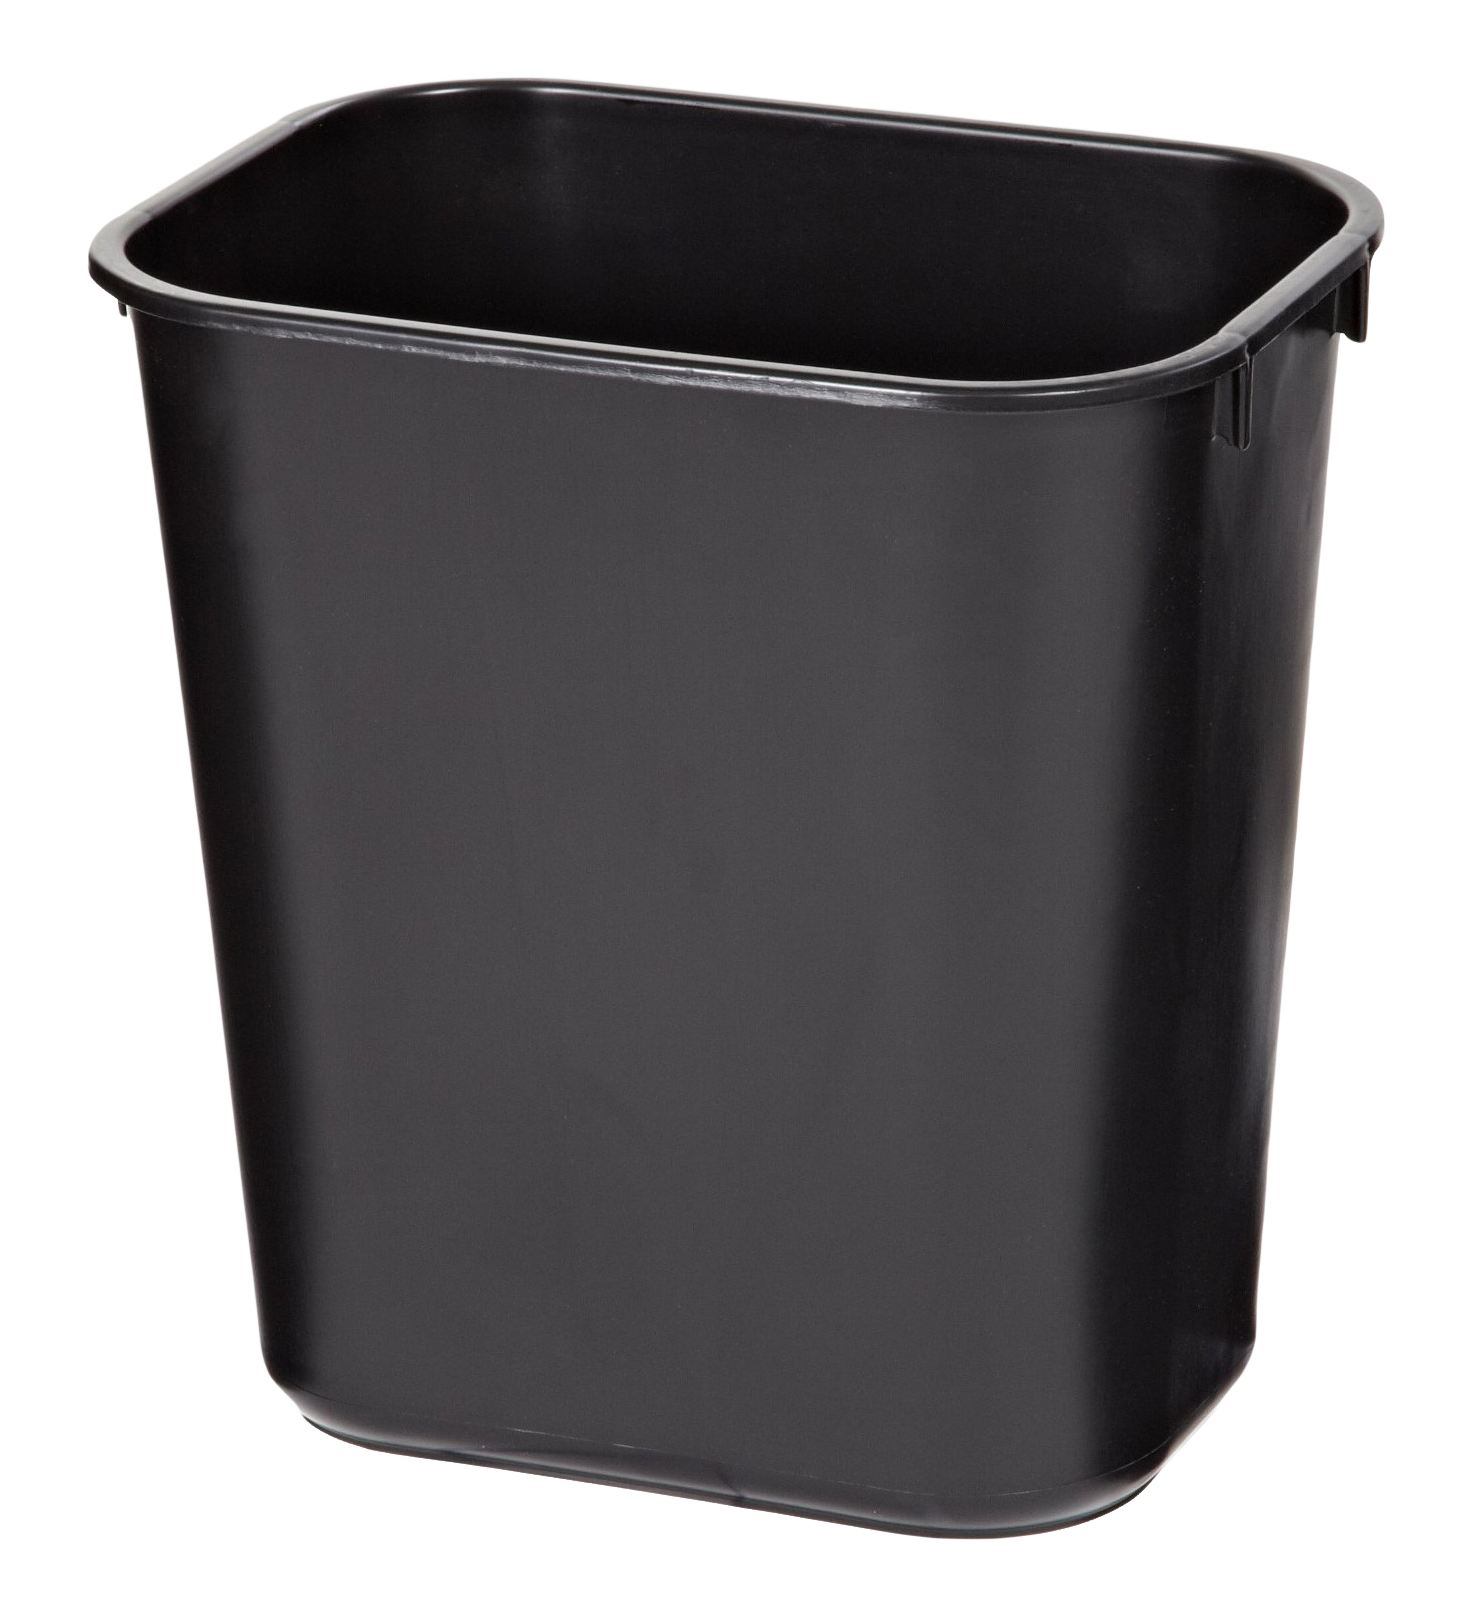 Dustbin PNG Transparent Image